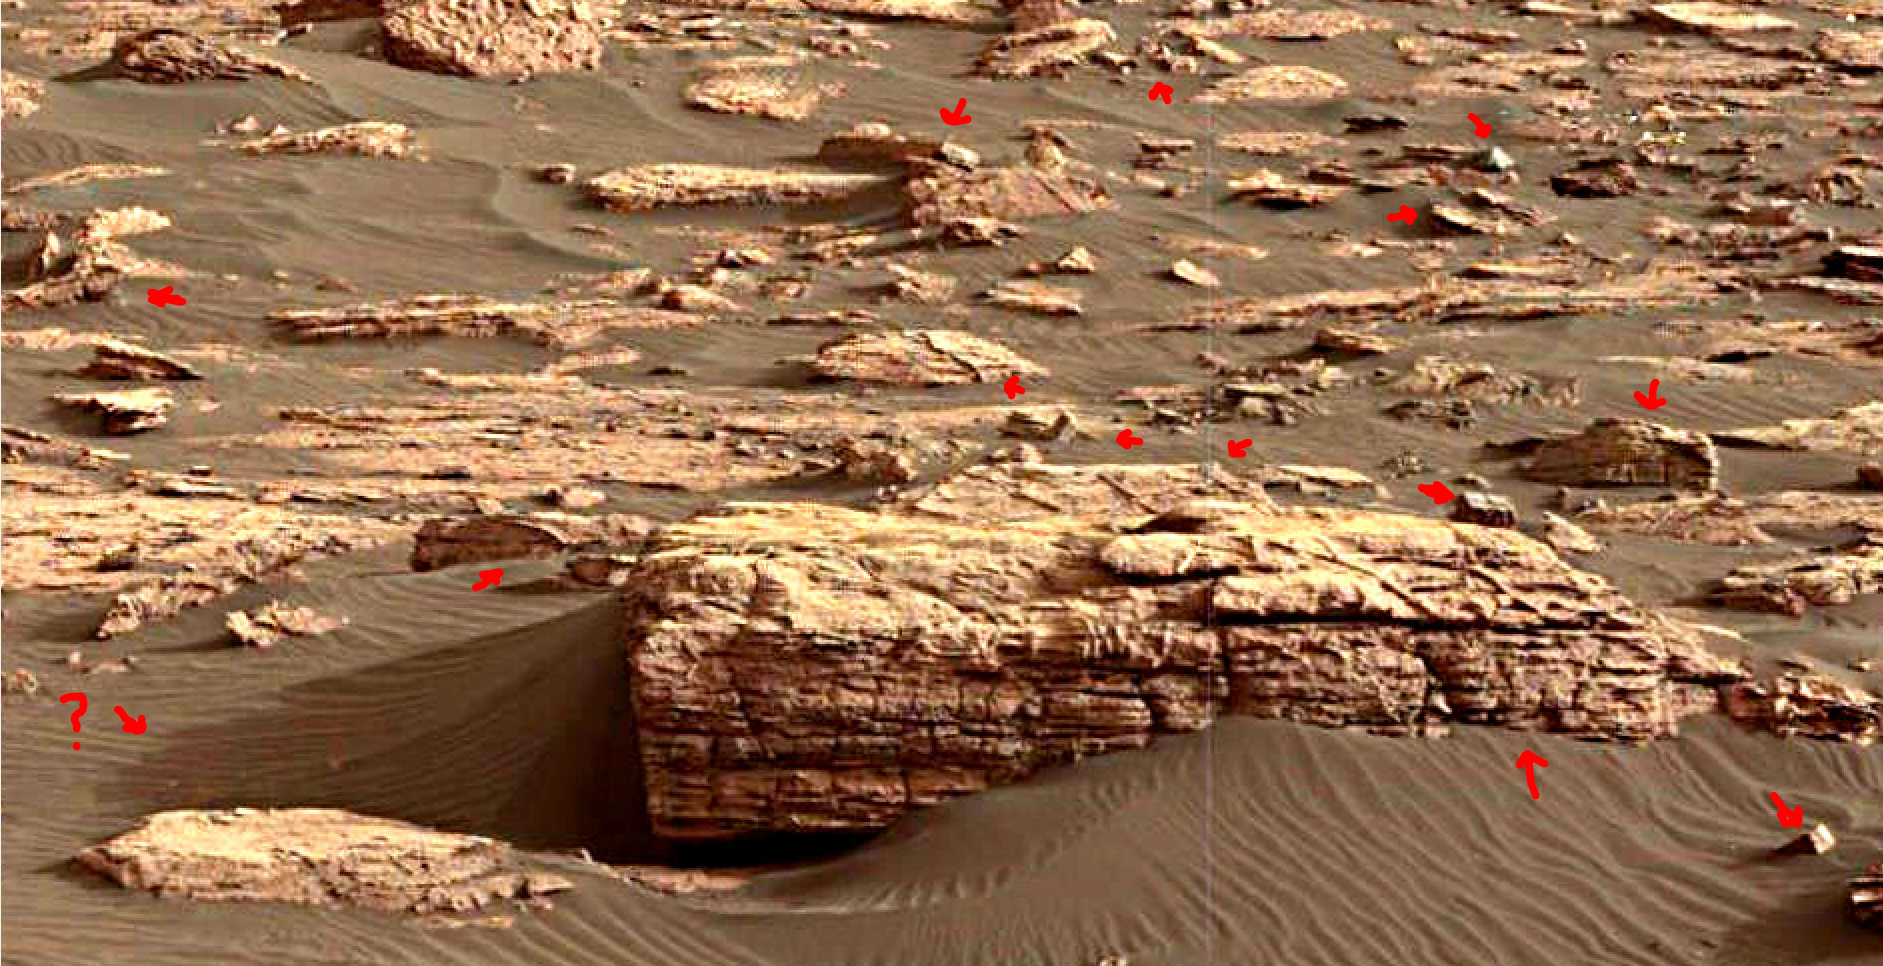 mars-sol-1512-anomaly-artifacts-5a-was-life-on-mars